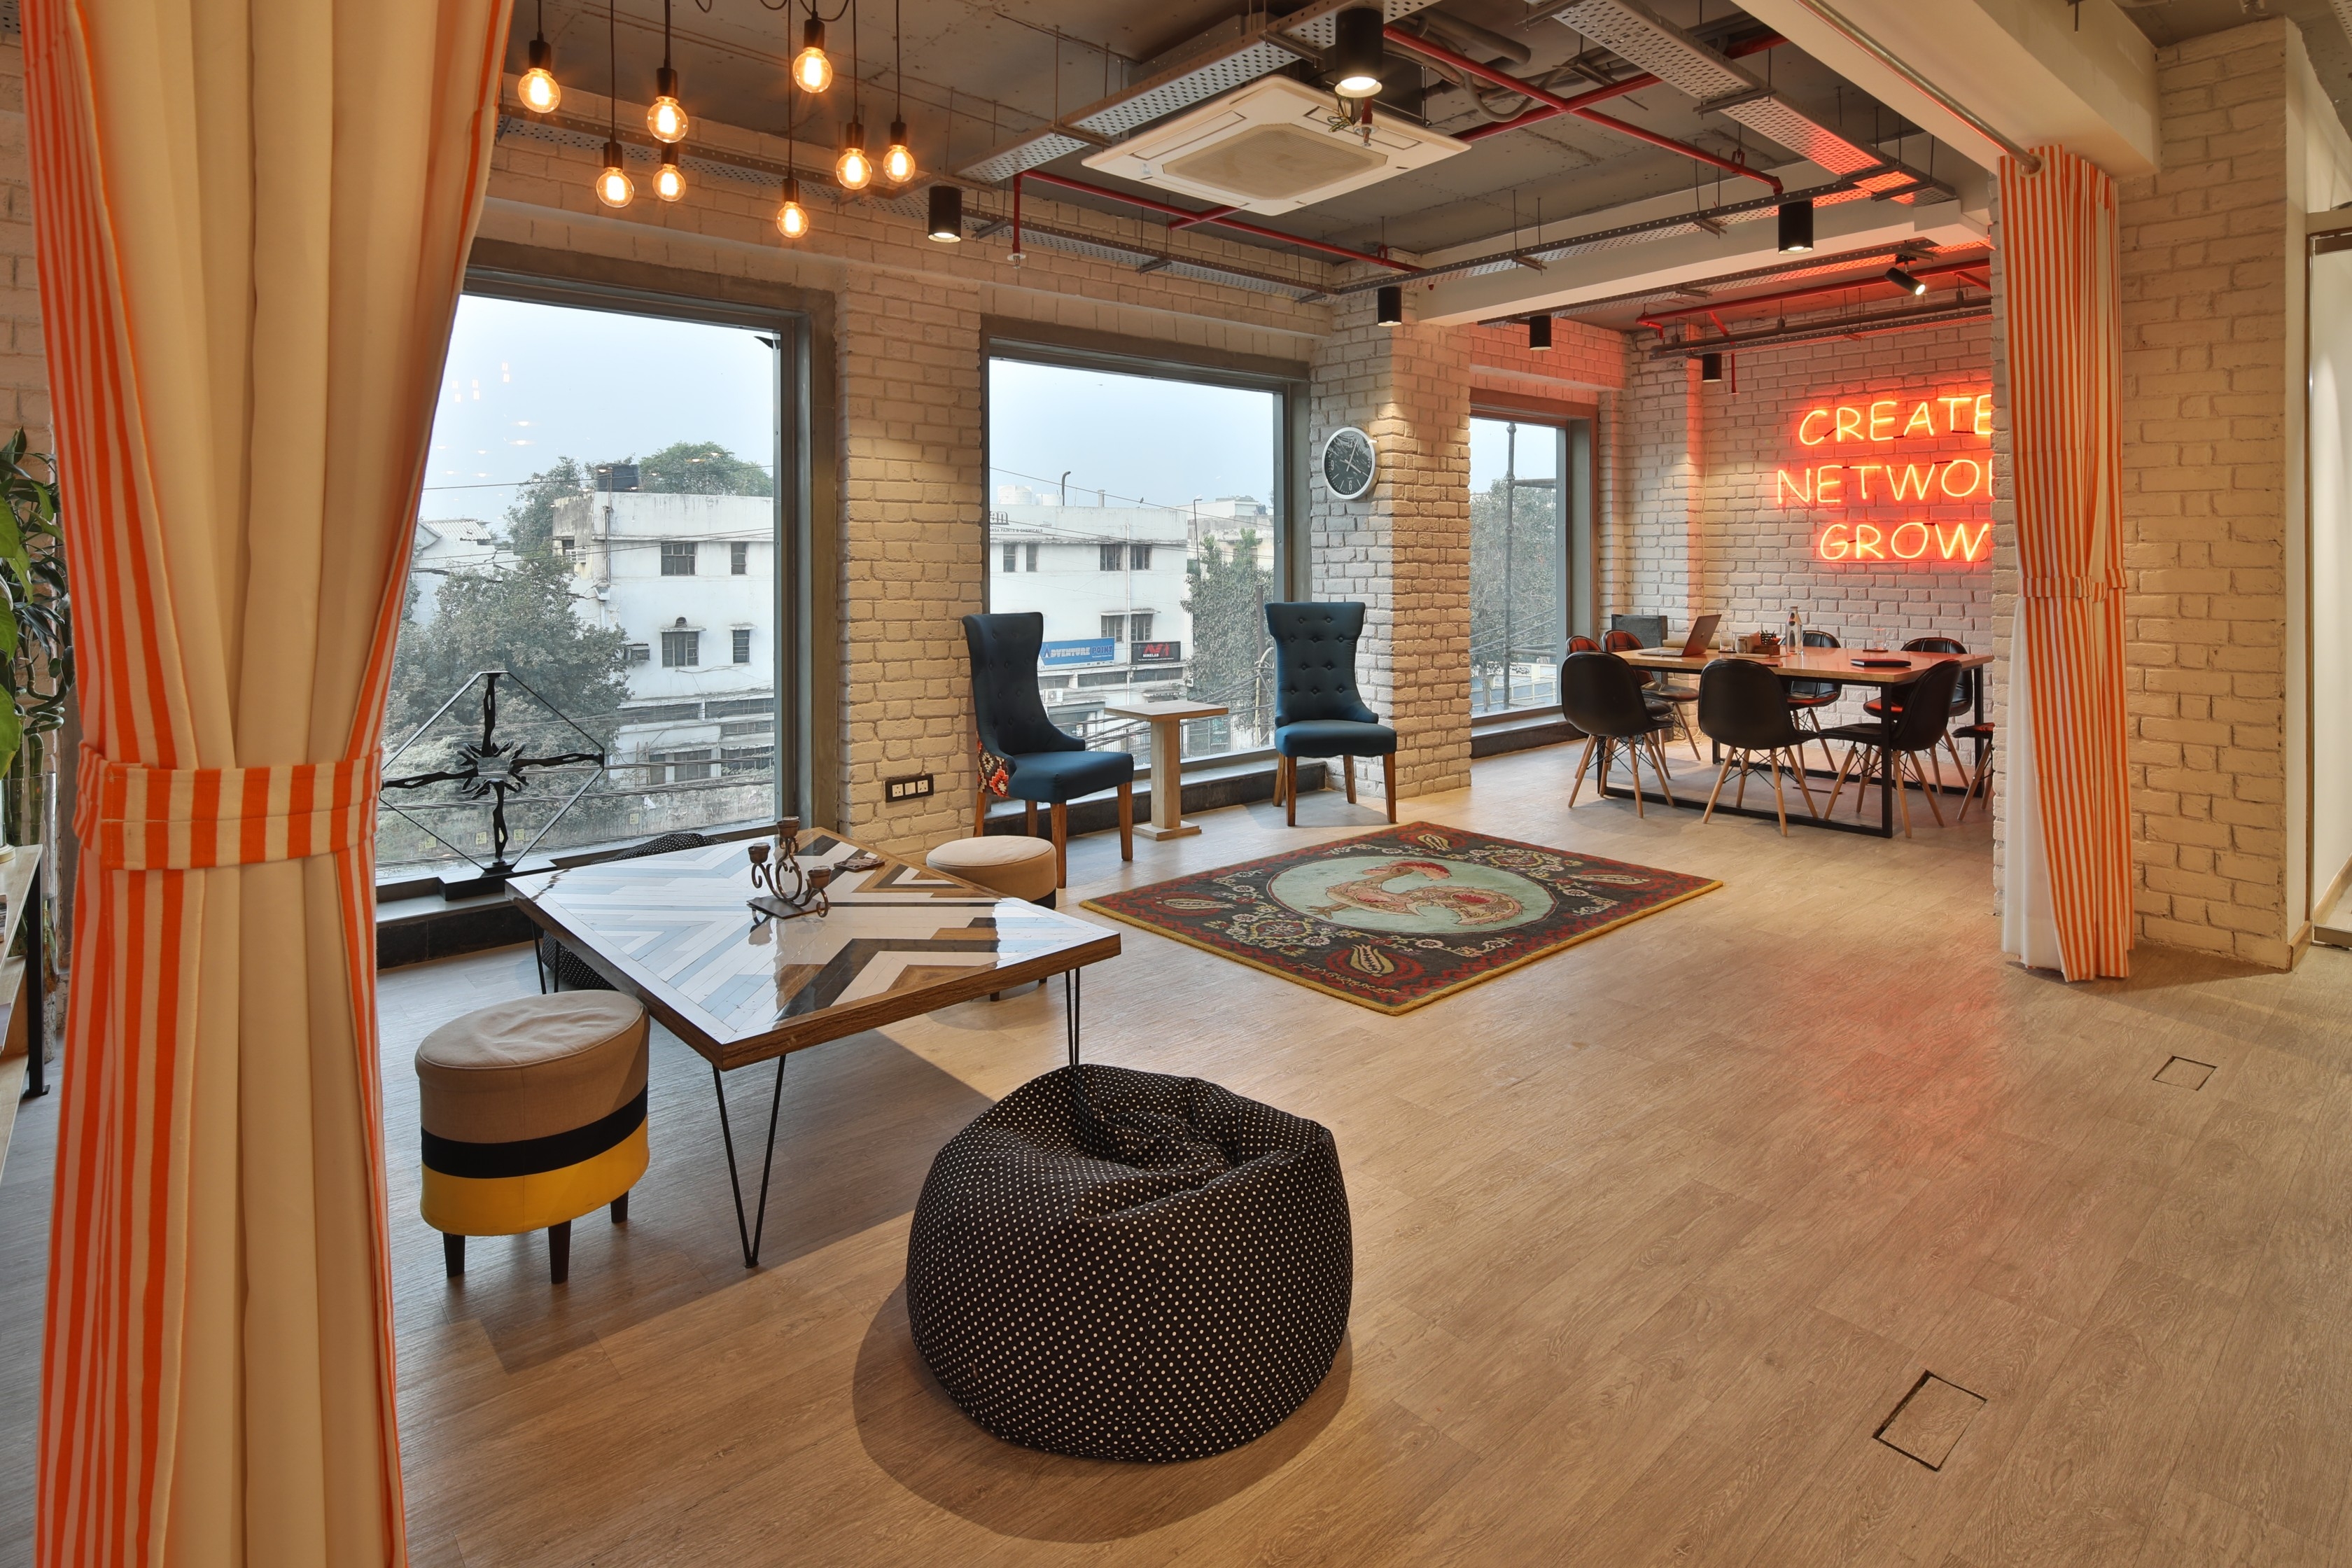 ArtBuzz Studios, New Delhi: A unique co-working space for creative professionals 15